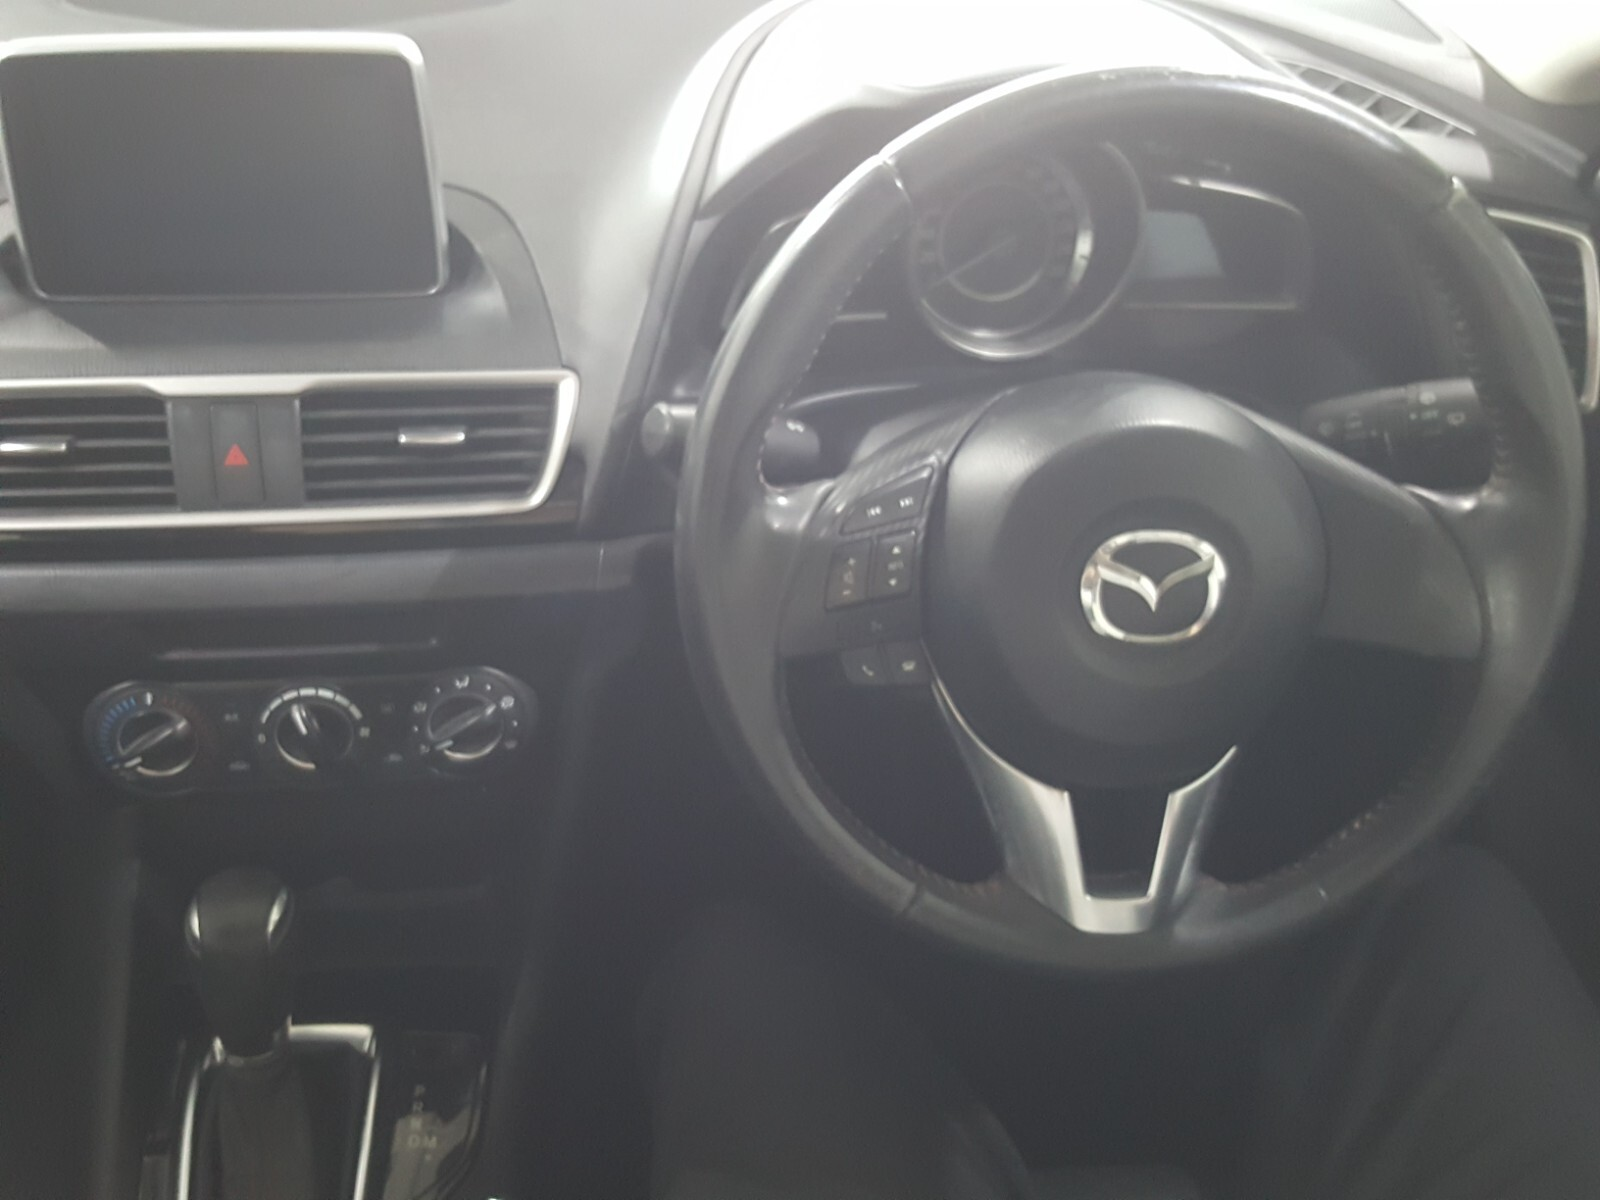 MAZDA 1.6 DYNAMIC 5DR A/T Roodepoort 15327025